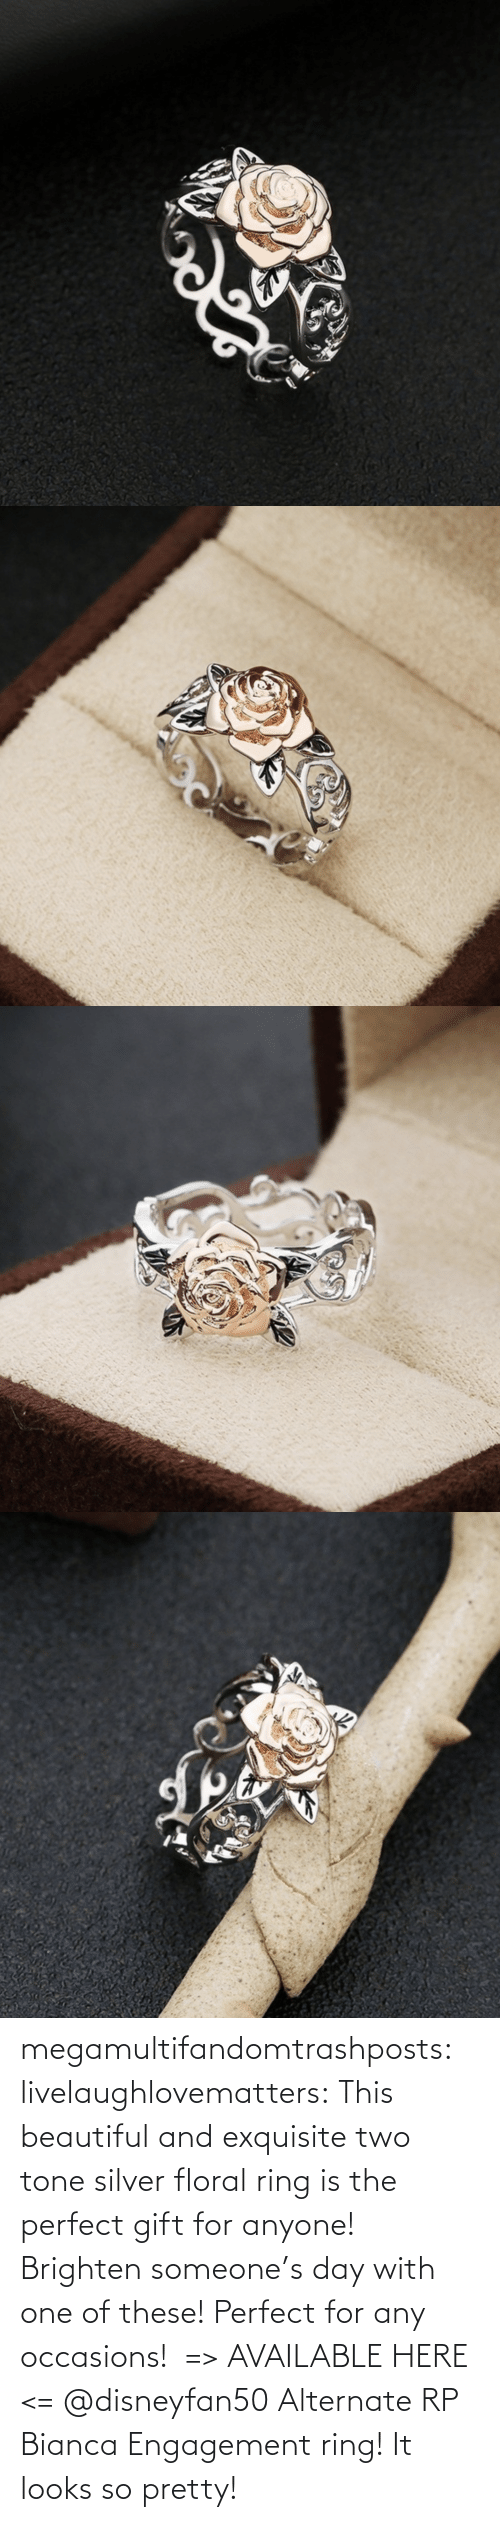 ring: megamultifandomtrashposts:  livelaughlovematters: This beautiful and exquisite two tone silver floral ring is the perfect gift for anyone! Brighten someone's day with one of these! Perfect for any occasions!  => AVAILABLE HERE <=    @disneyfan50 Alternate RP Bianca Engagement ring! It looks so pretty!